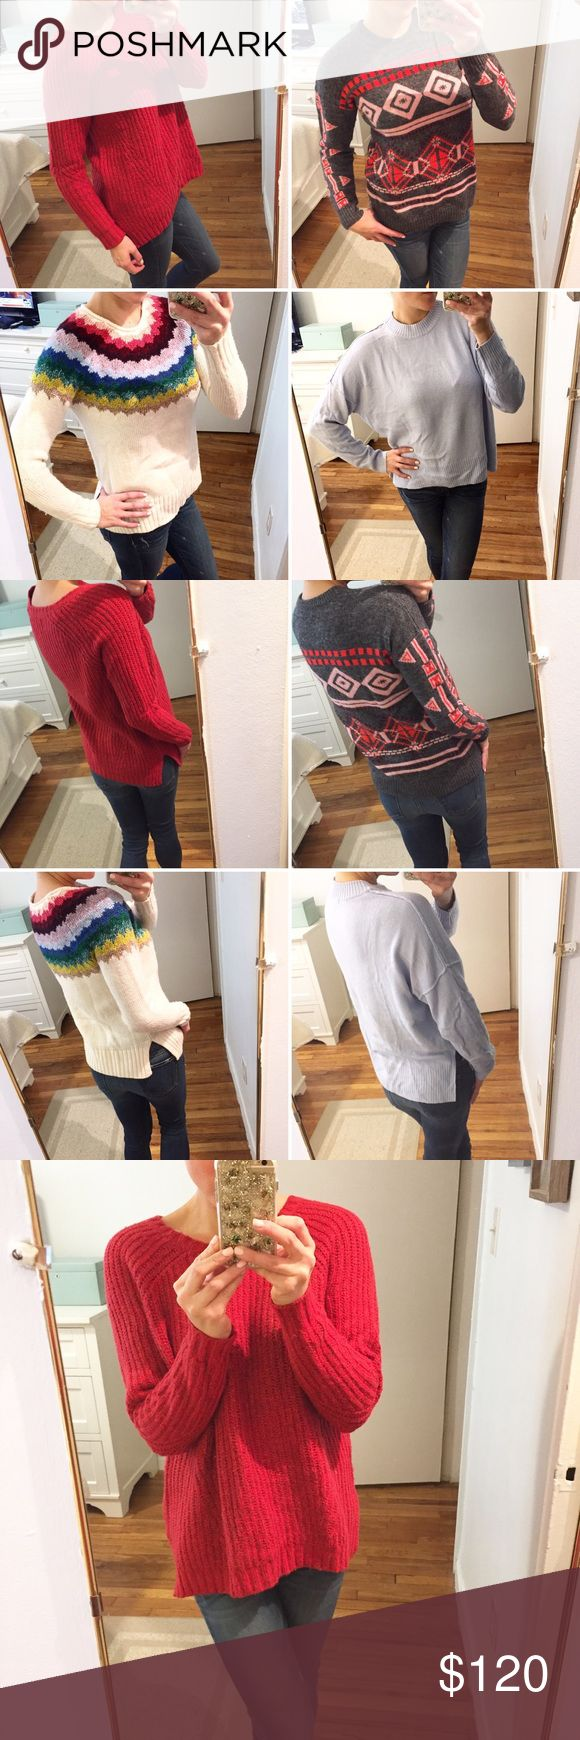 Sweater Bundle //J. Crew • American Eagle • H&M 🚚Moving SALE🚚 Price is for the bundle of 4 sweaters! All have been worn only once on a ski trip last winter- freshly dry cleaned. All Excellent Condition! No Flaws!   •Red Sweater- American Eagle, size Medium •Dark Grey- J. Crew, size Small •Cream with multi colors- American Eagle, size Small •Light Blue- H&M, size Small   ✨Pet & Smoke Free Home!✨Same or Next Day Shipping!✨ 🚫No Lowball Offers Please. Price is very fair considering condition…